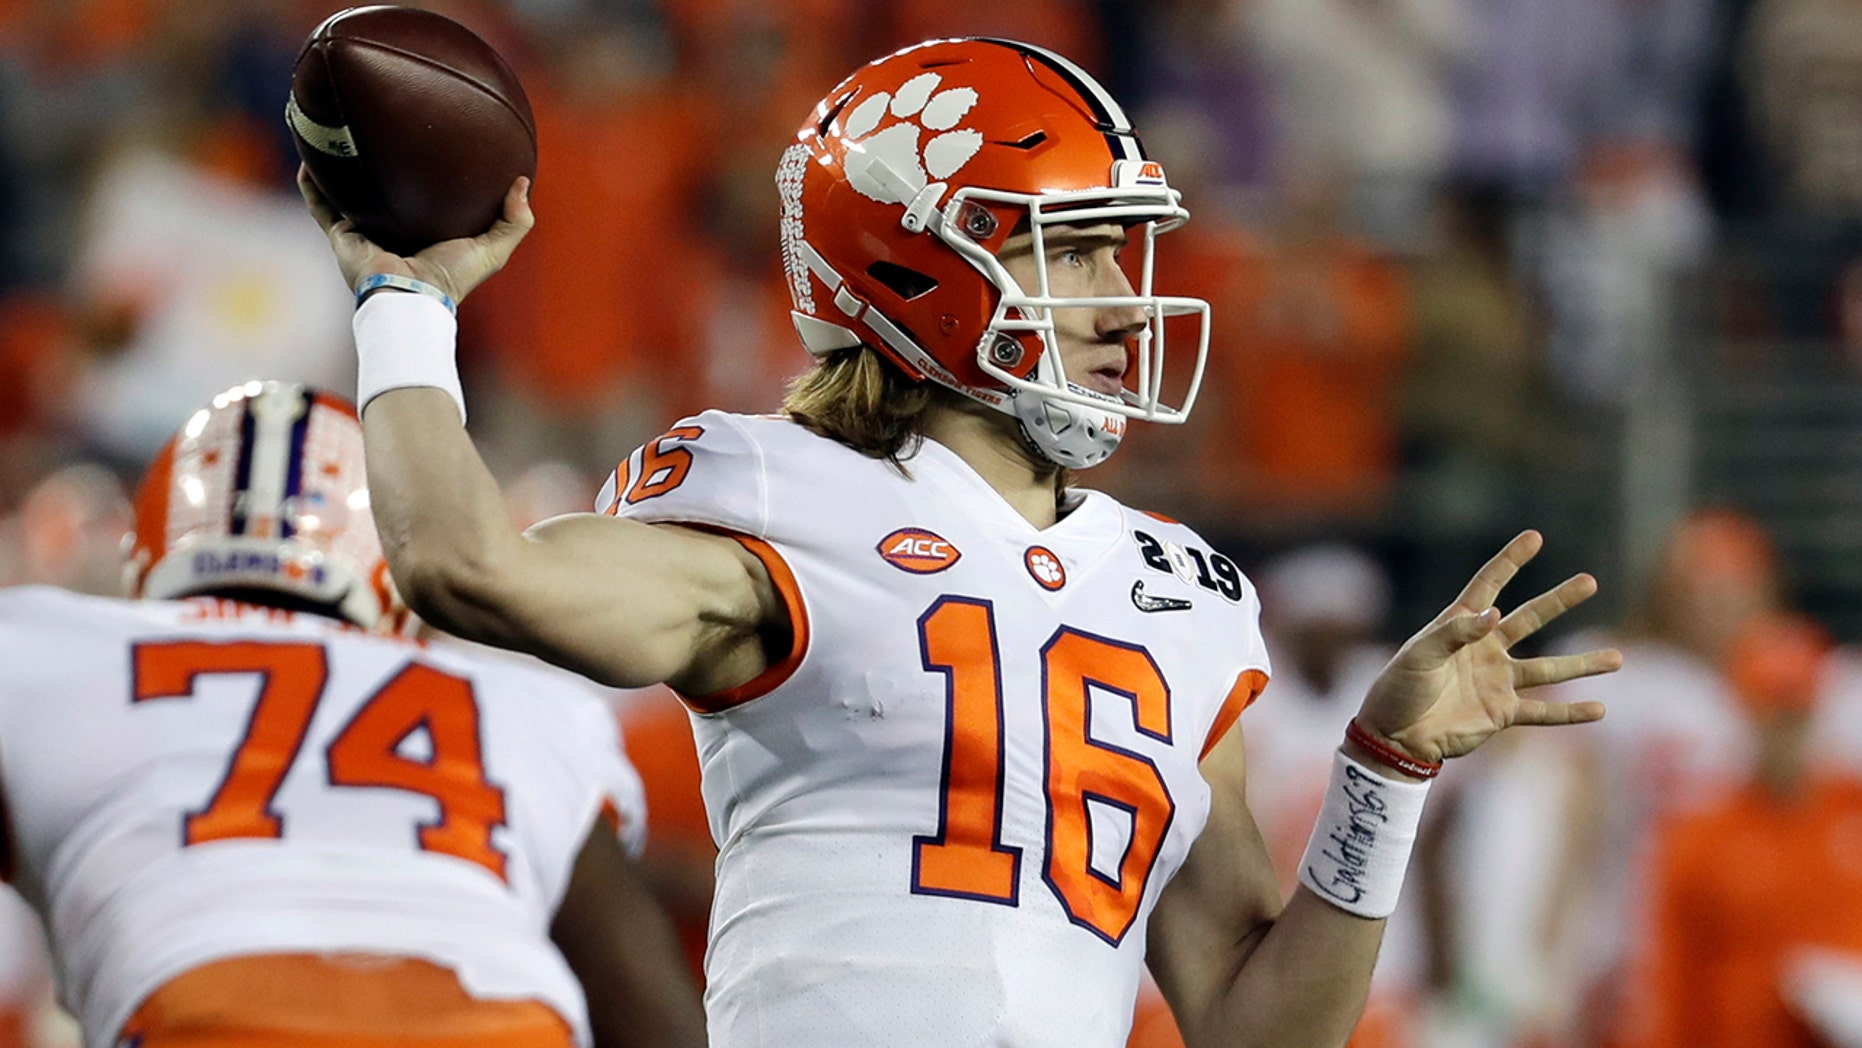 "FILE - In this Jan. 7, 2019, file photo, Clemson's Trevor Lawrence throws during the first half the NCAA college football playoff championship game against Alabama, in Santa Clara, Calif. Sure, Clemson lost all four of its ""Power Rangers"" defensive line and seven starters on defense from its title team. But the Tigers' offense, led by Heisman Trophy candidates quarterback Trevor Lawrence and tailback Travis Etienne, looks ready to operate at an even higher level than a year ago when it averaged 527 yards and 44.3 points a game. (AP Photo/Chris Carlson, File)"